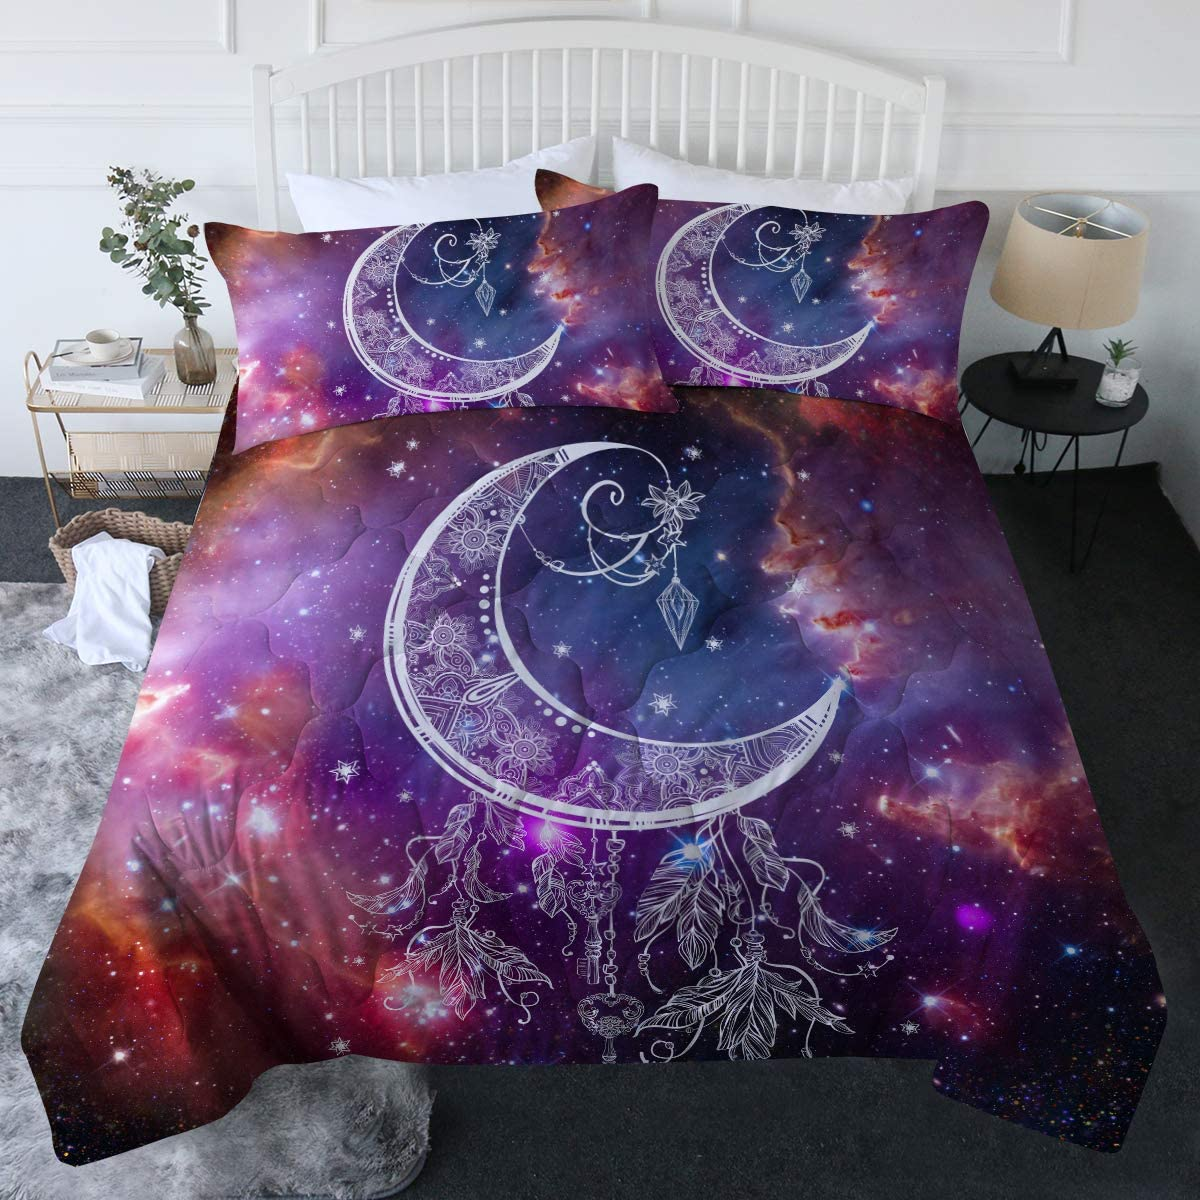 BlessLiving 3 Piece Crescent Moon Comforter Set with Pillow Shams Boho Feather Bedding Set with 3D Printed Designs Reversible Comforter King Size Duvet Sets, Purple Star Galaxy